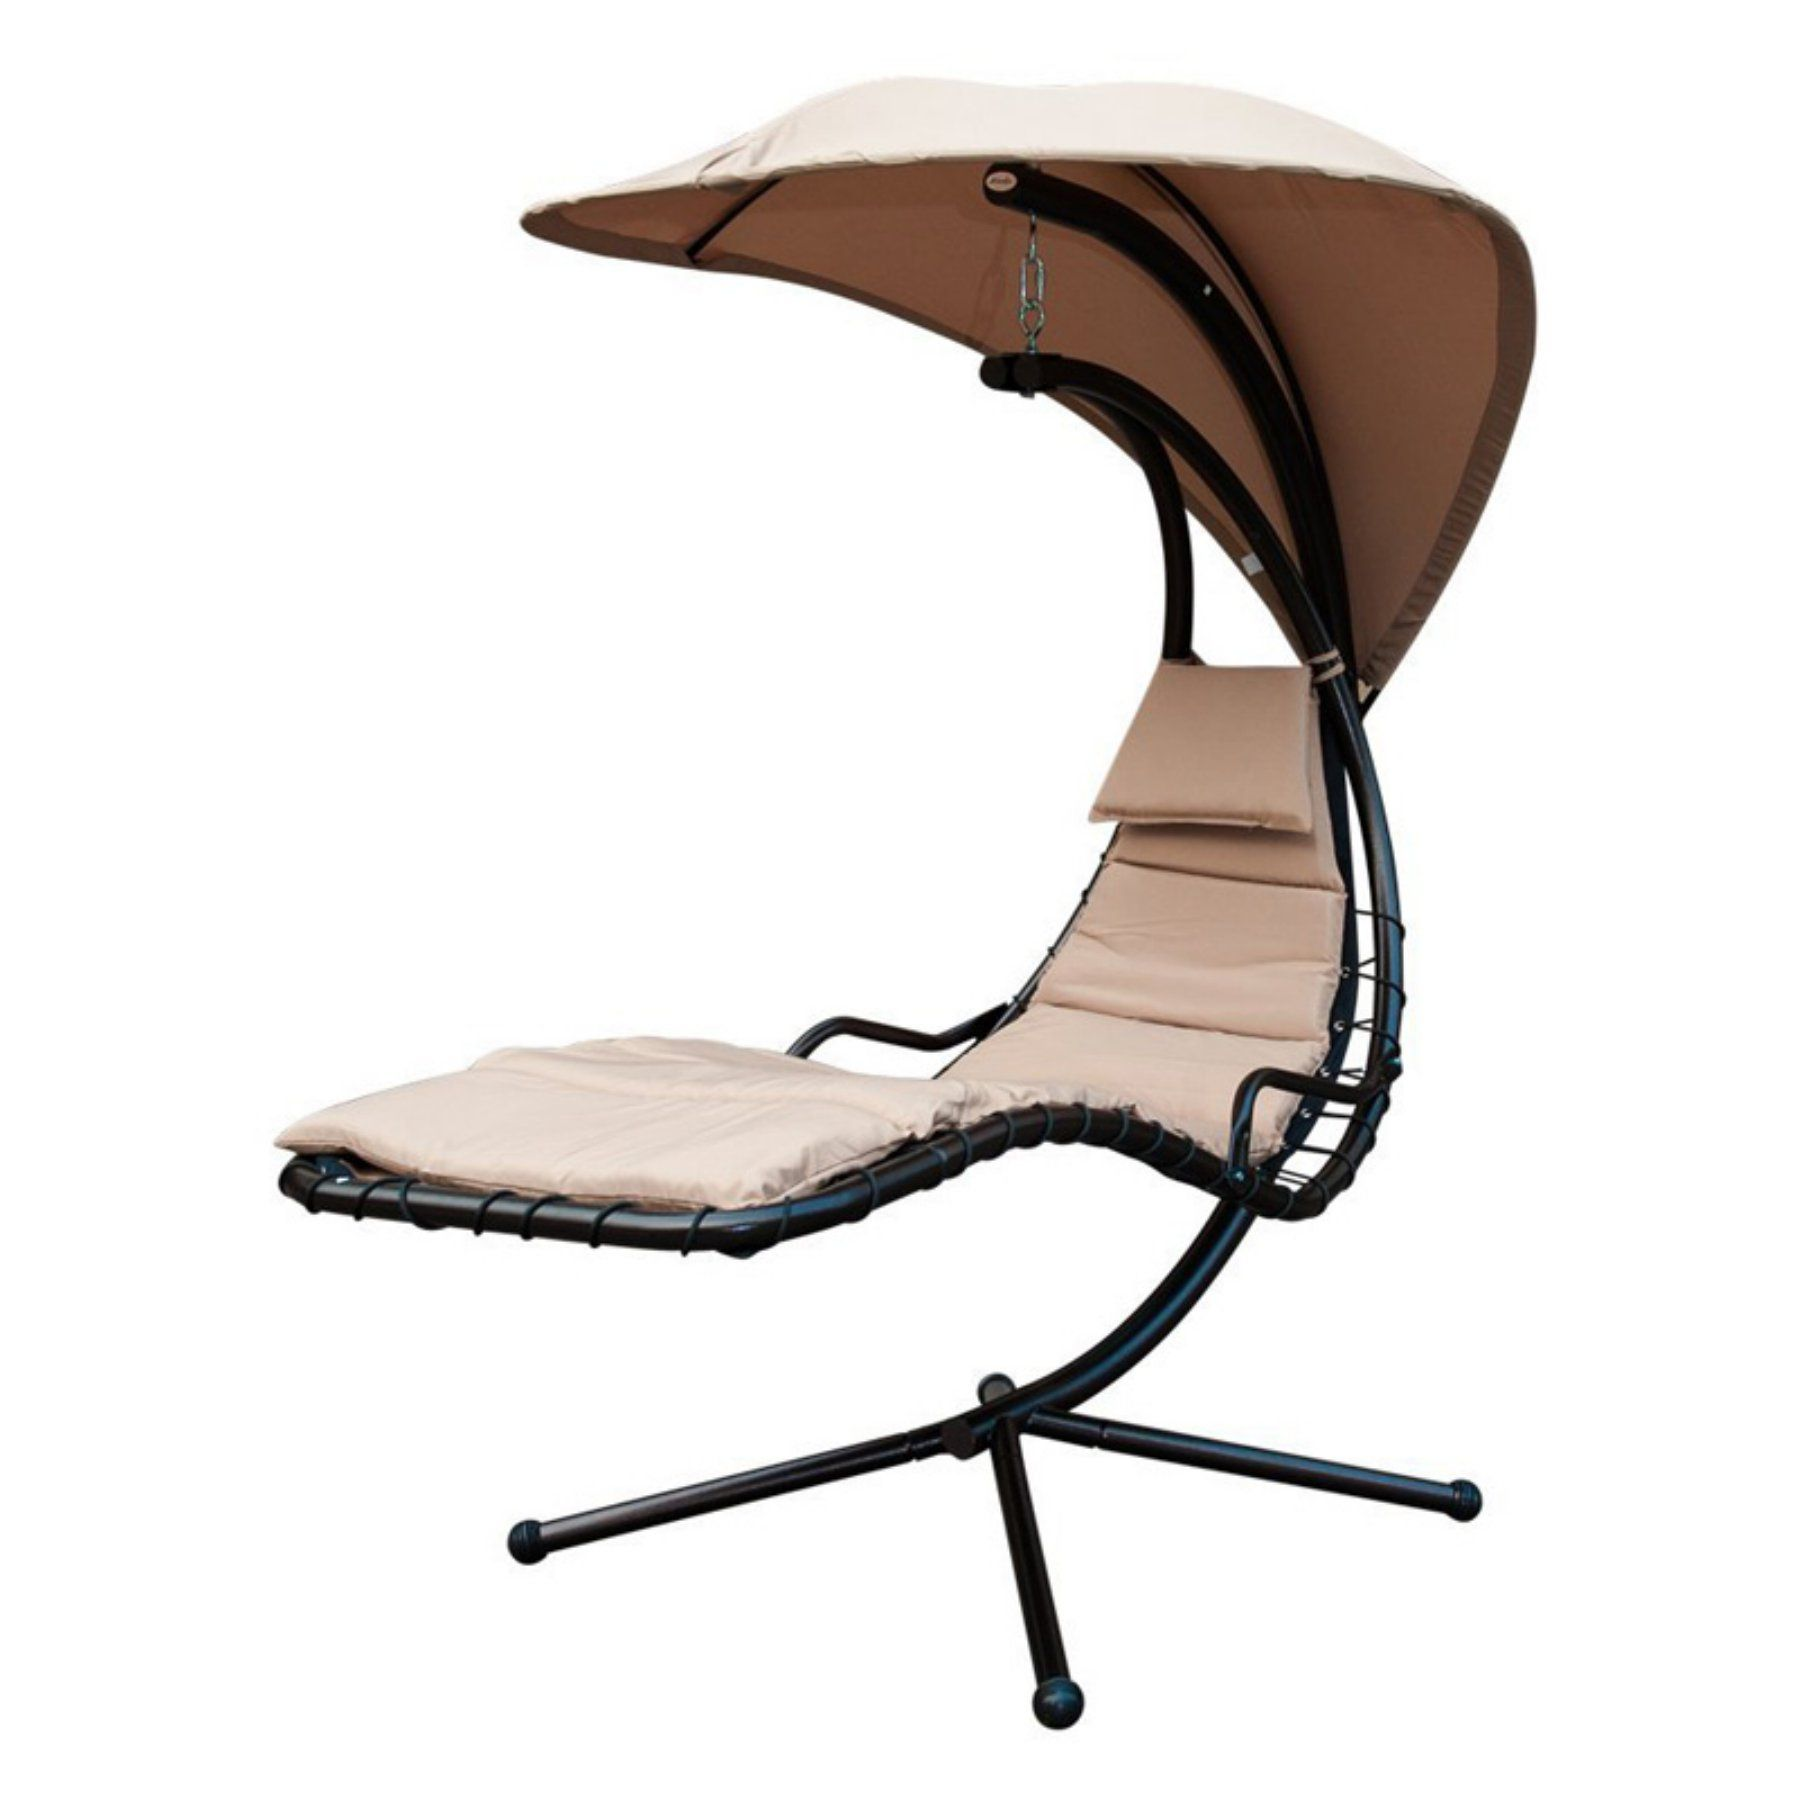 Sunlife Sling Lounger Hanging Chair With Arc Stand Canopy